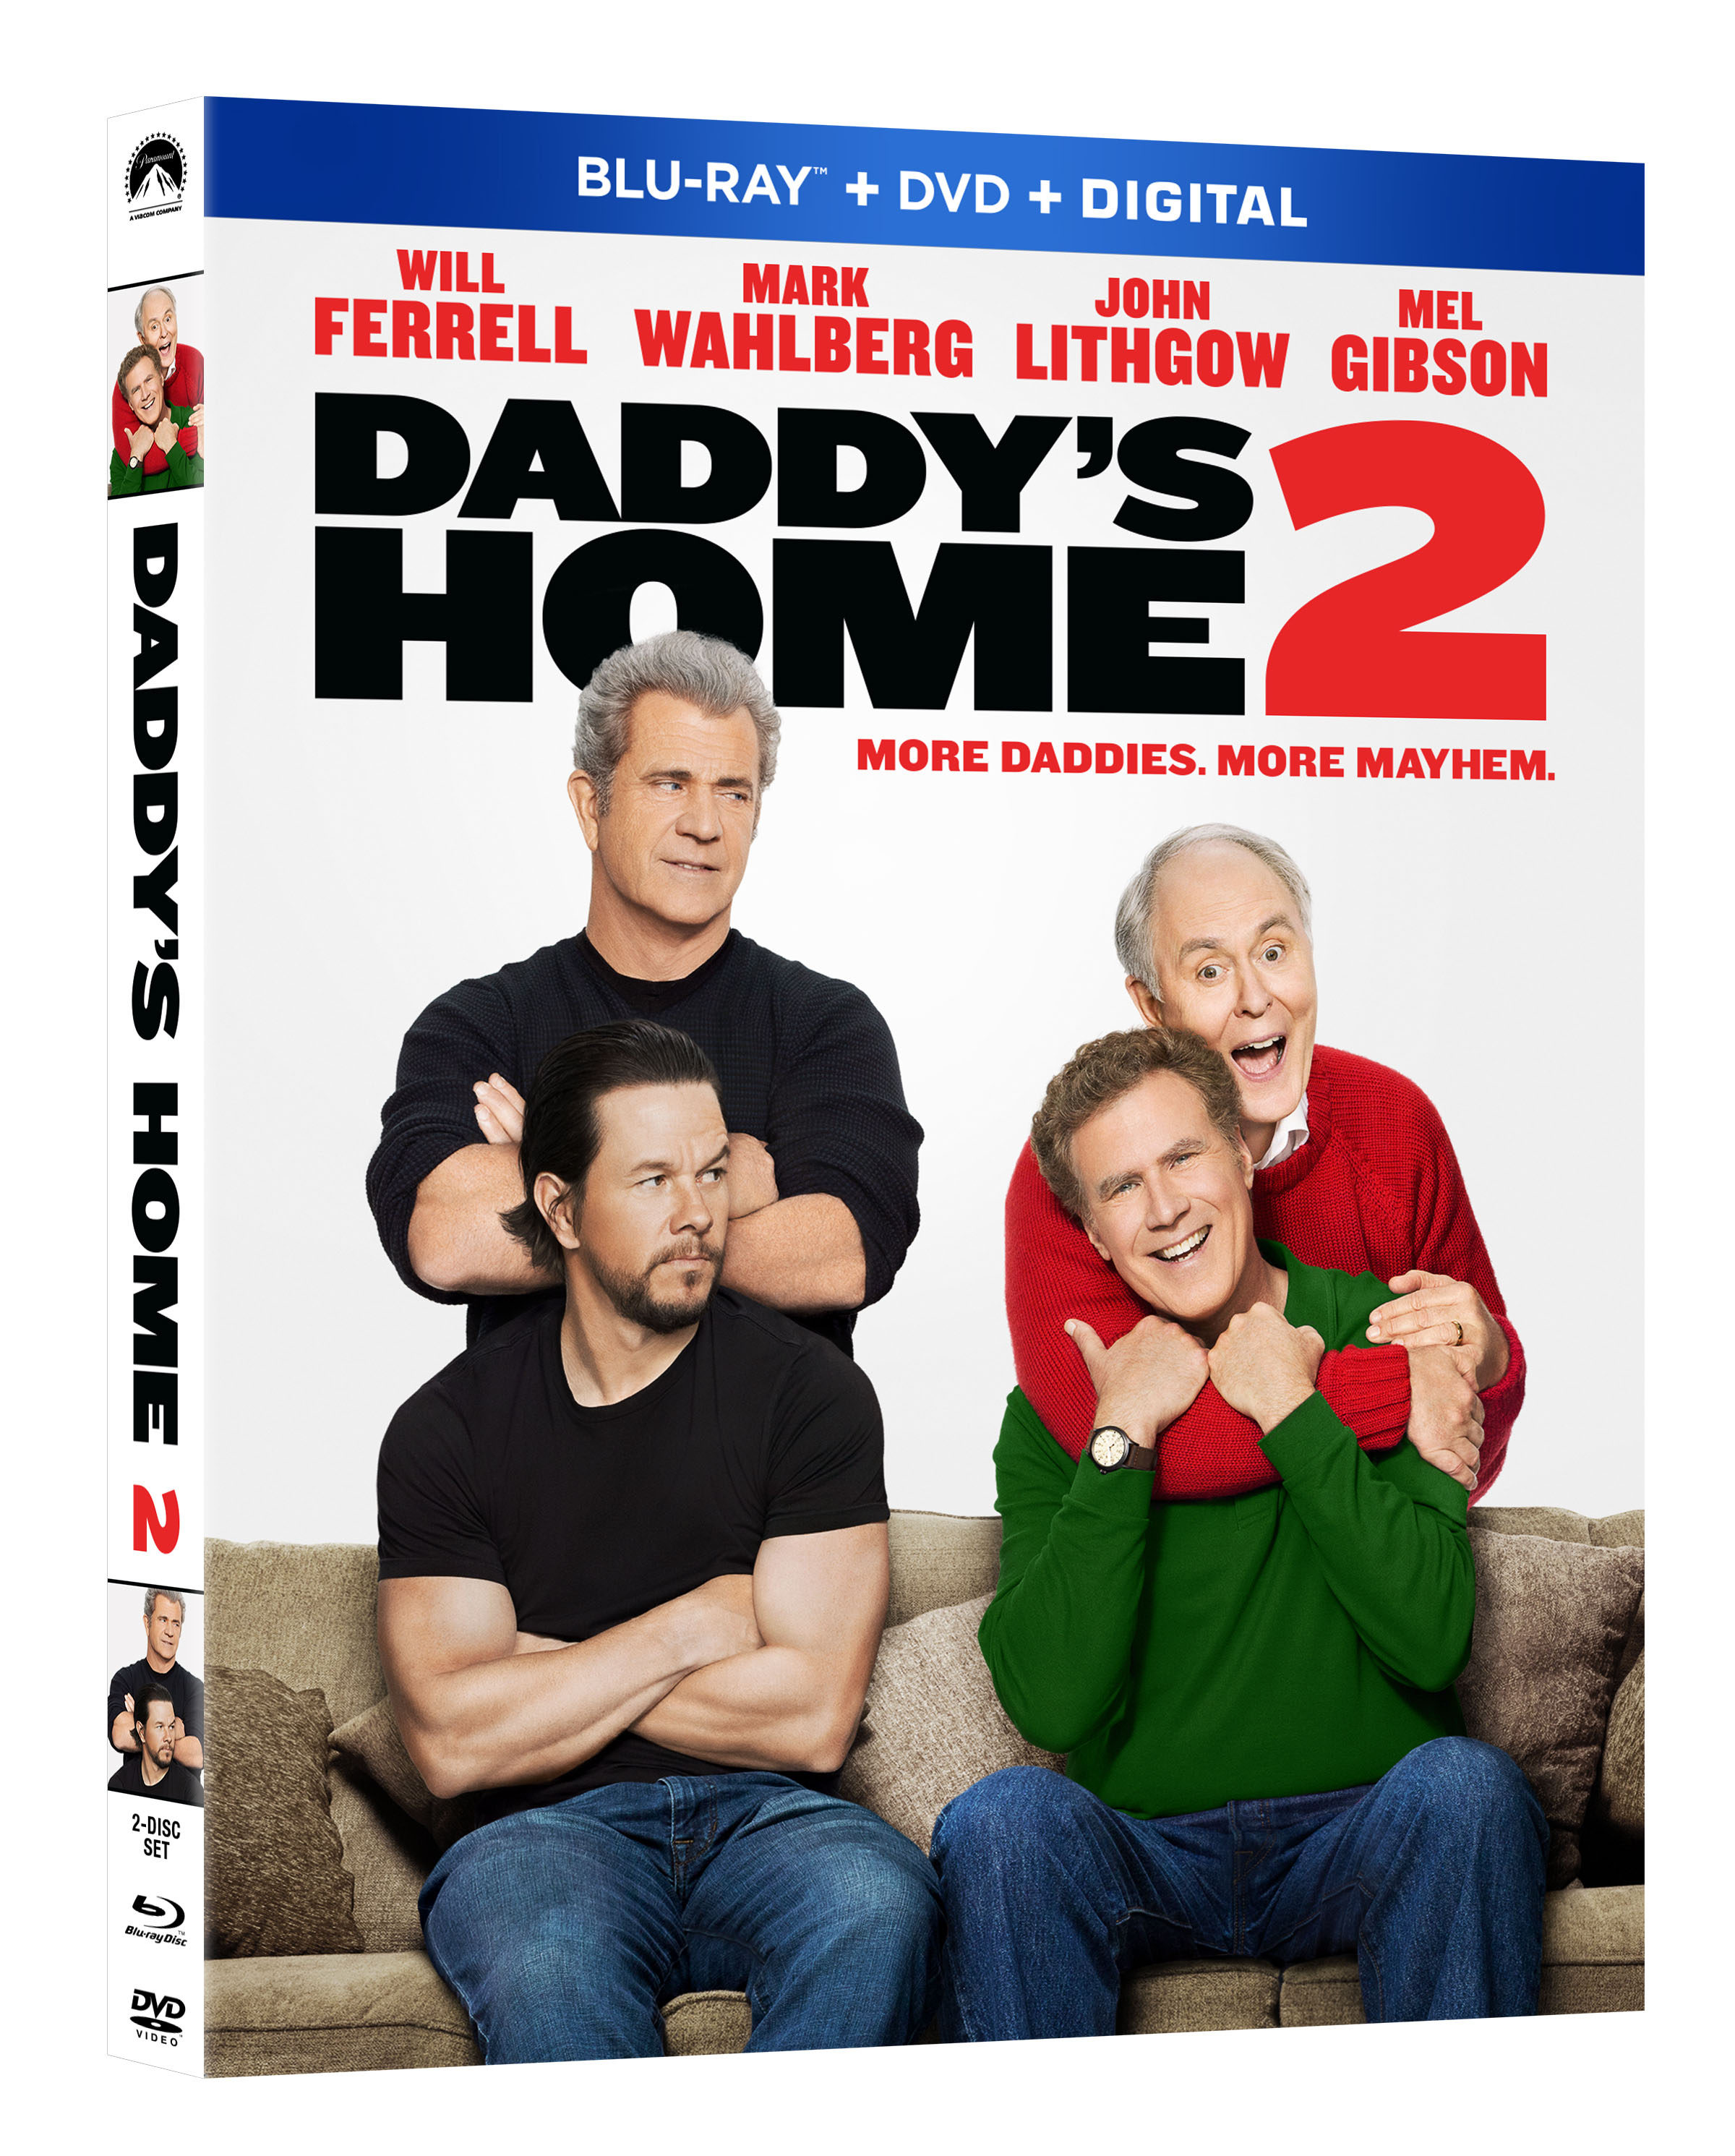 DADDY'S HOME 2 Blu-ray